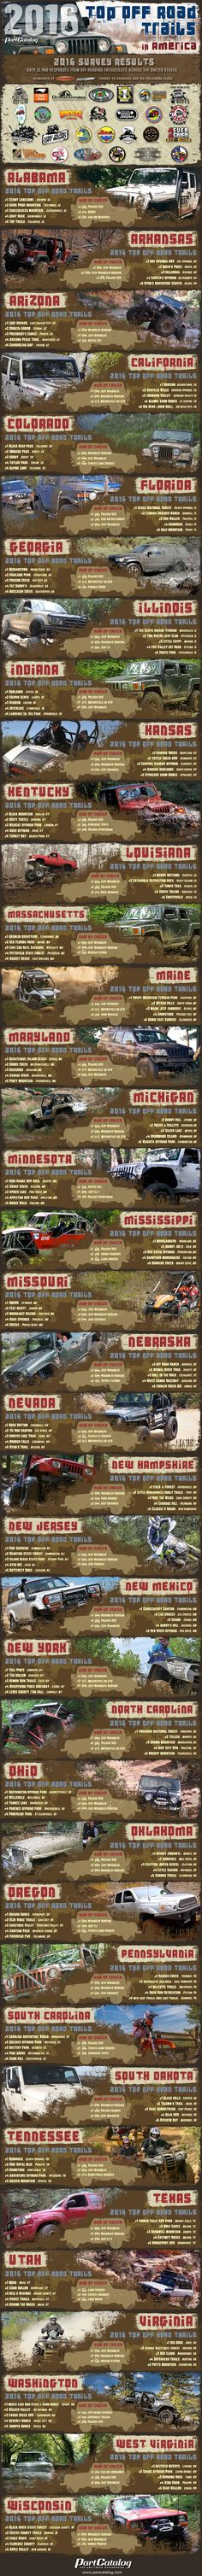 2016 Top Off Road Trails in America